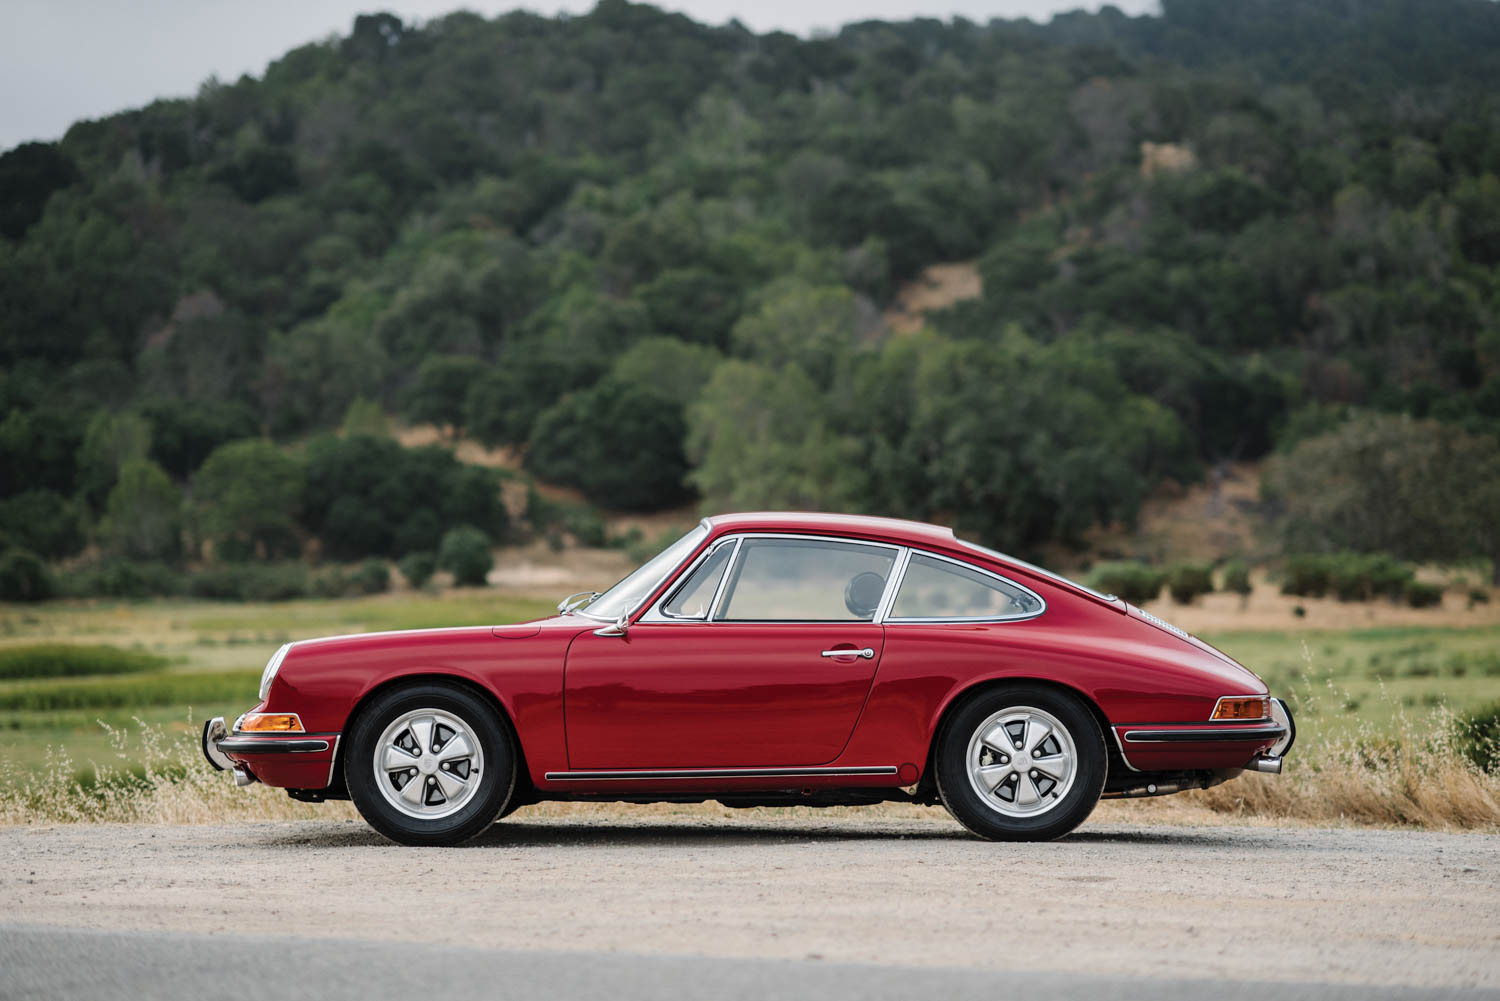 1967 Porsche 911 S Coupe side profile